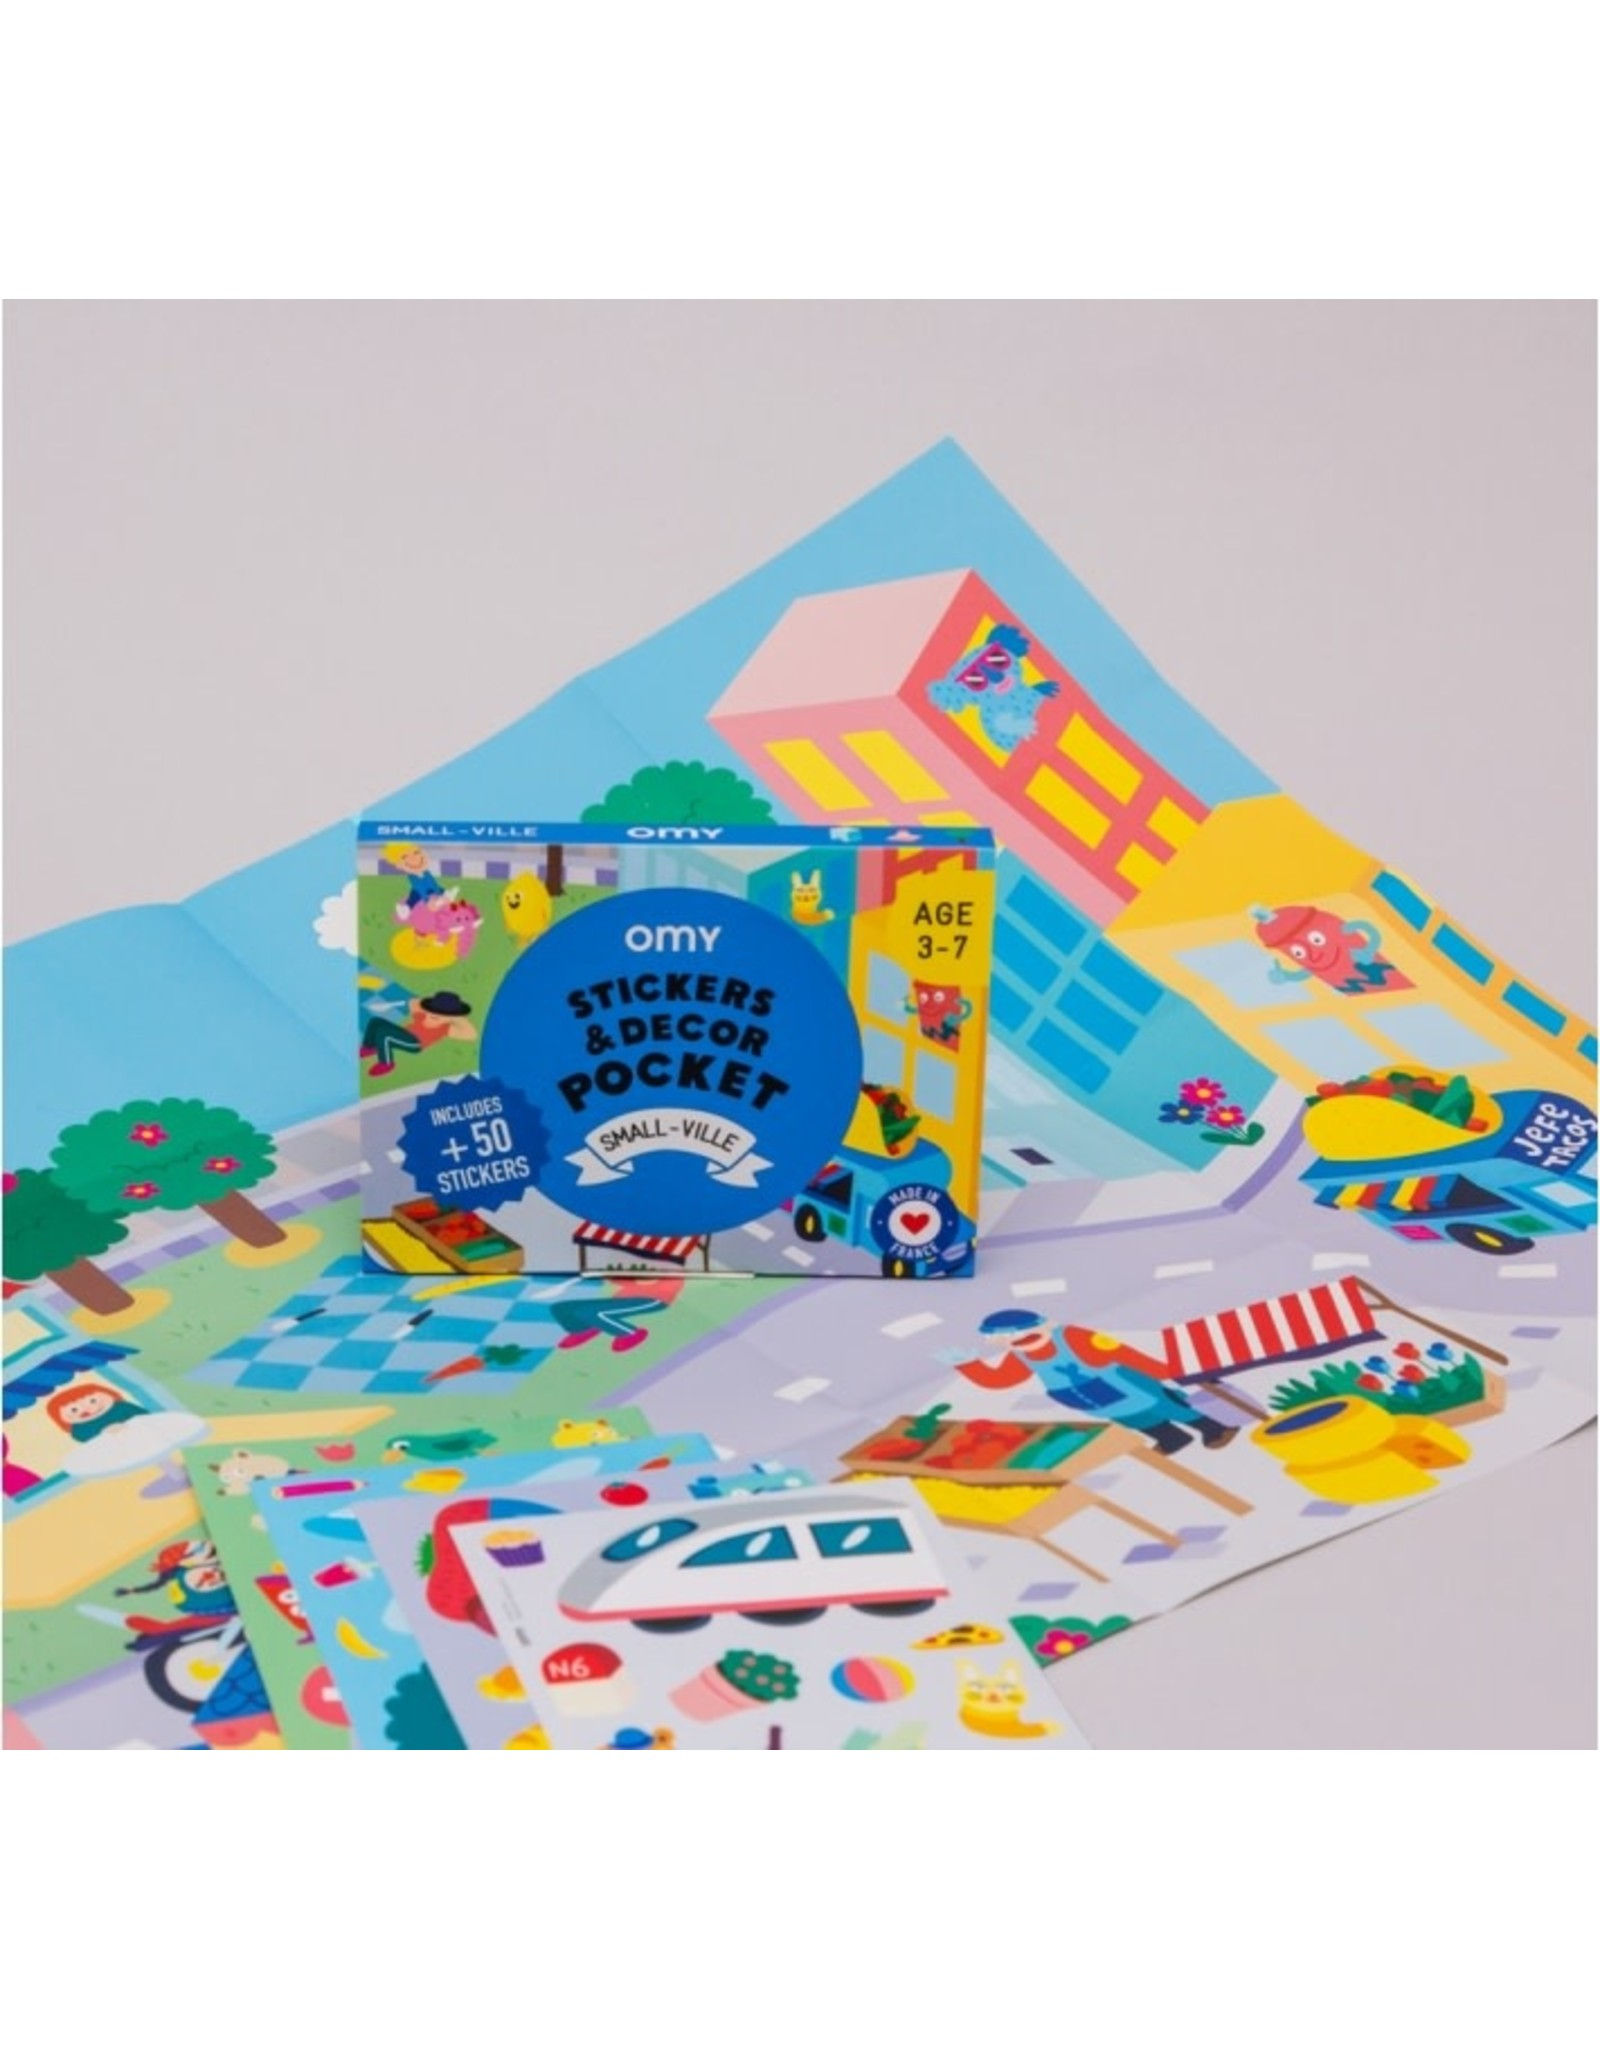 OMY Stickers deco pocket - Small-ville